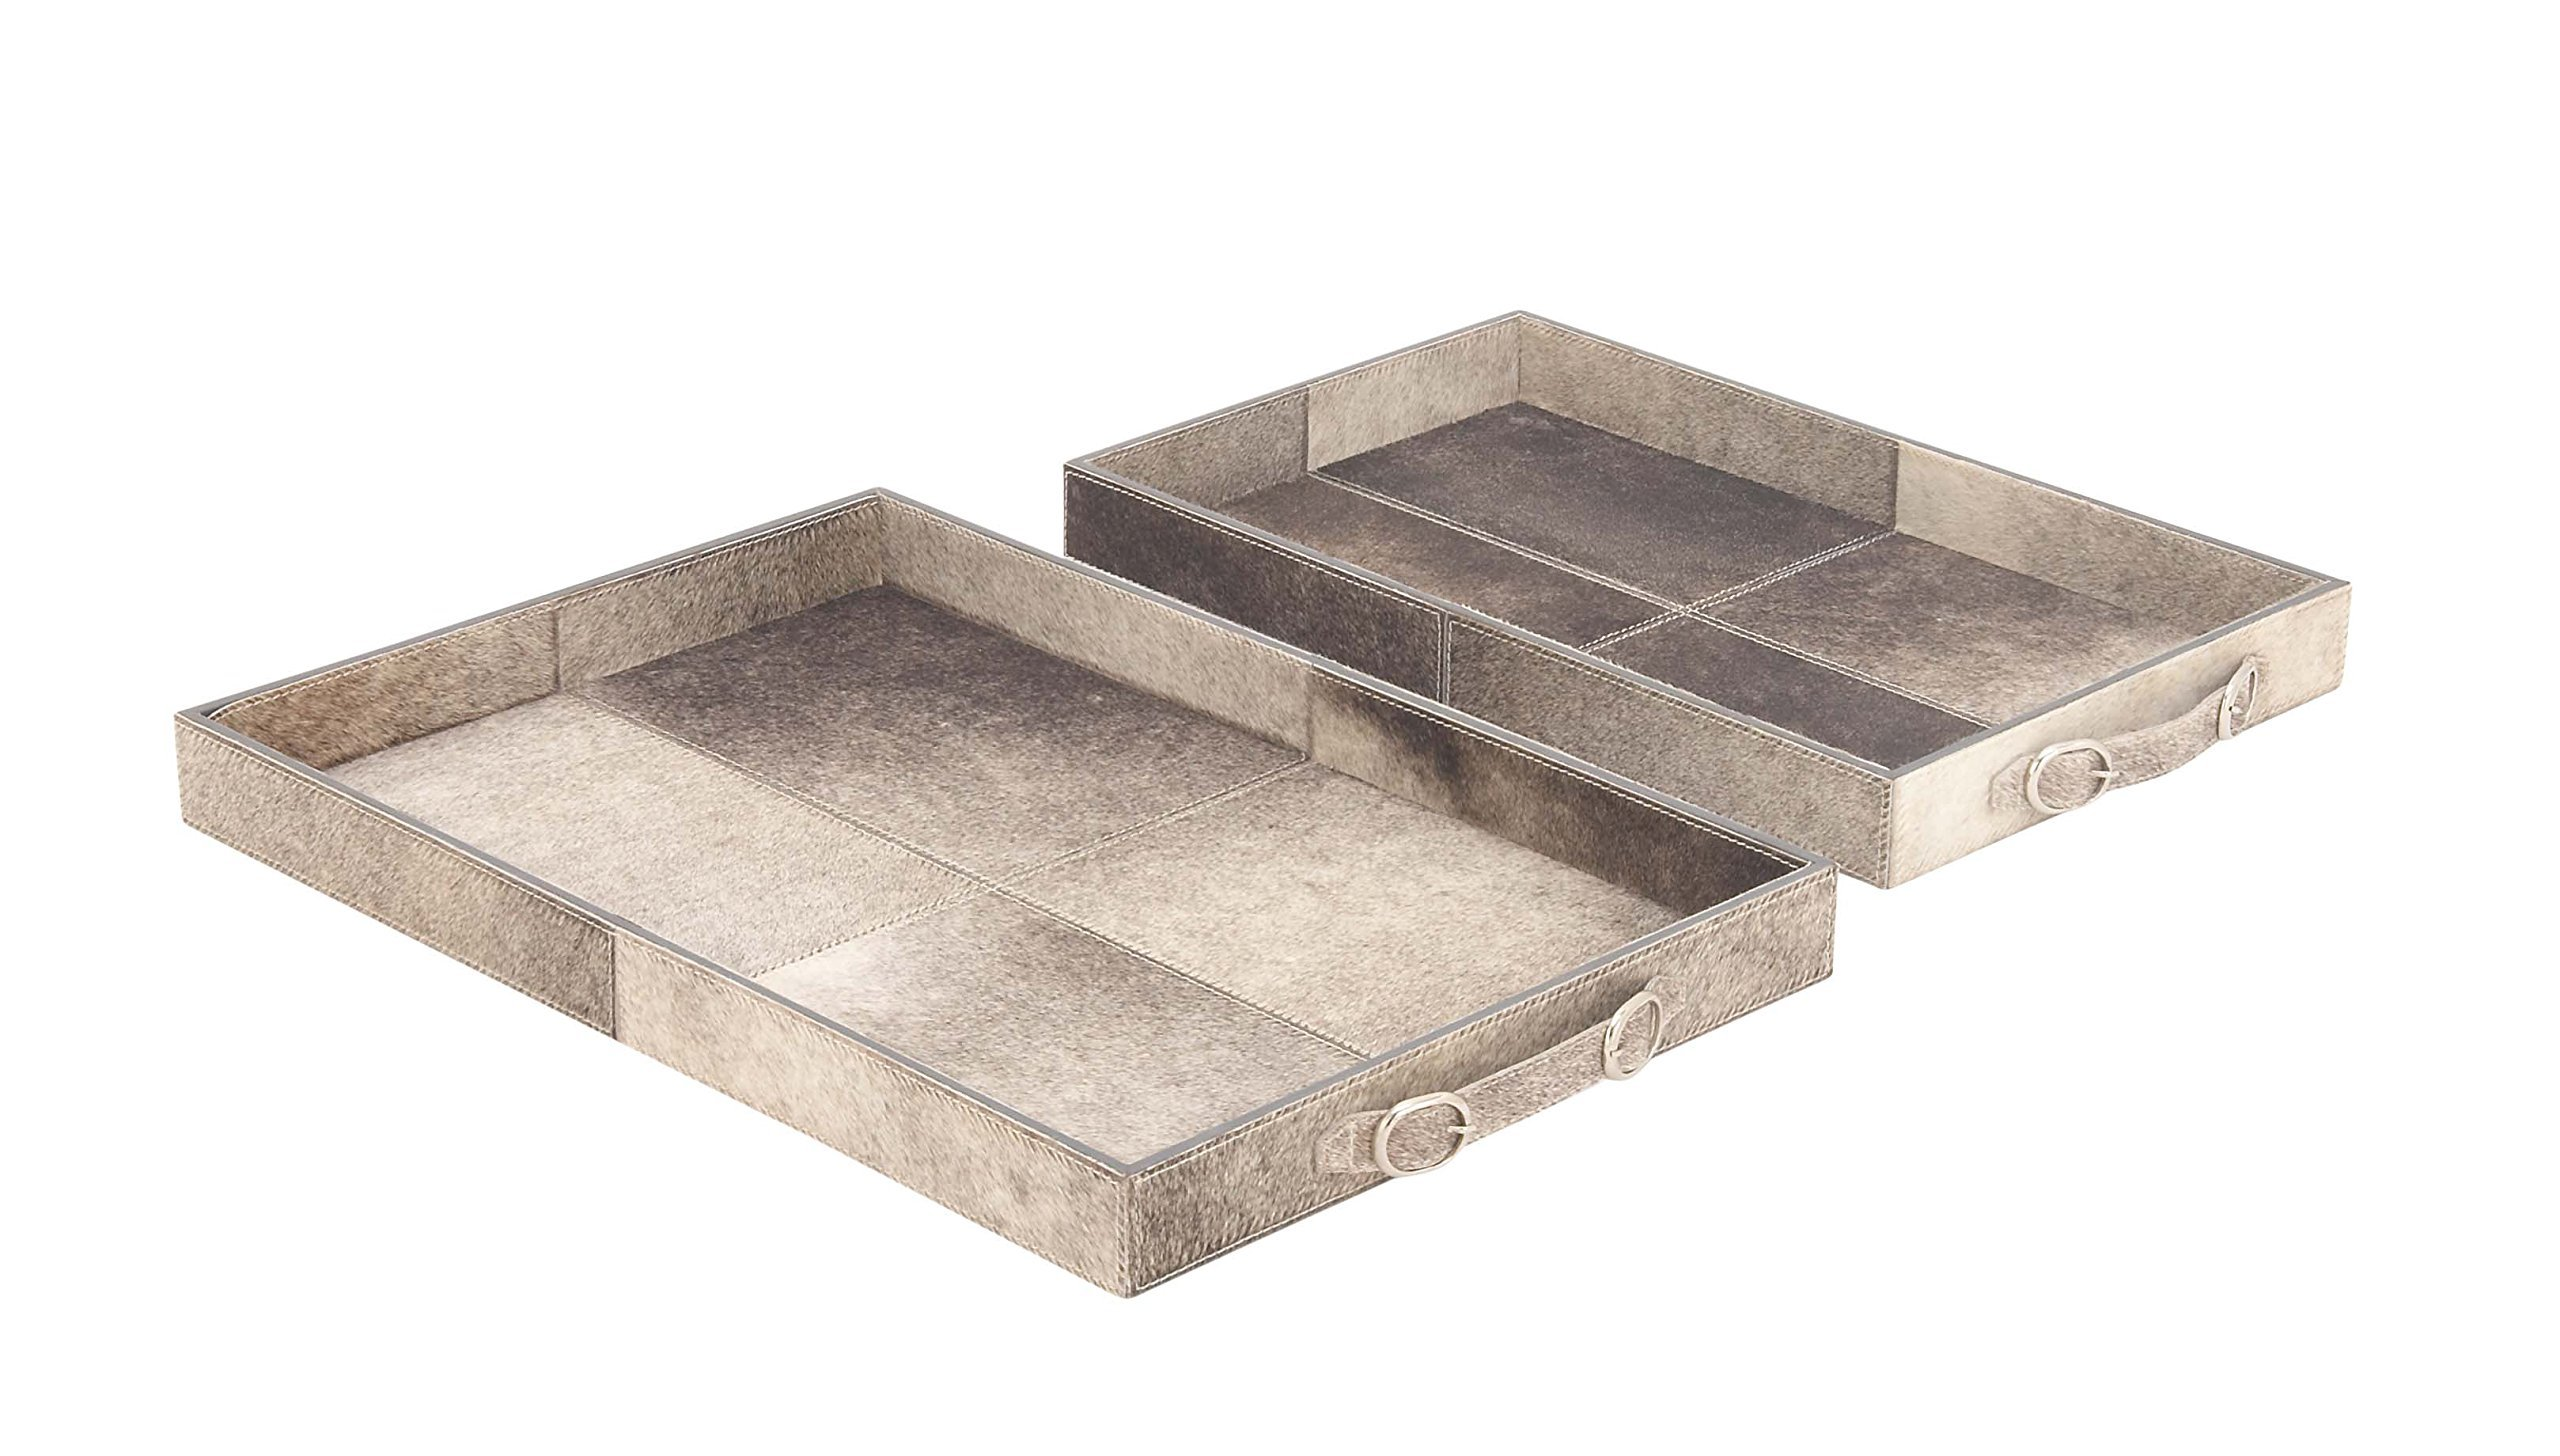 Deco 79 95043 Wood and Leather Trays (Set of 2), Gray/Black by Deco 79 (Image #1)